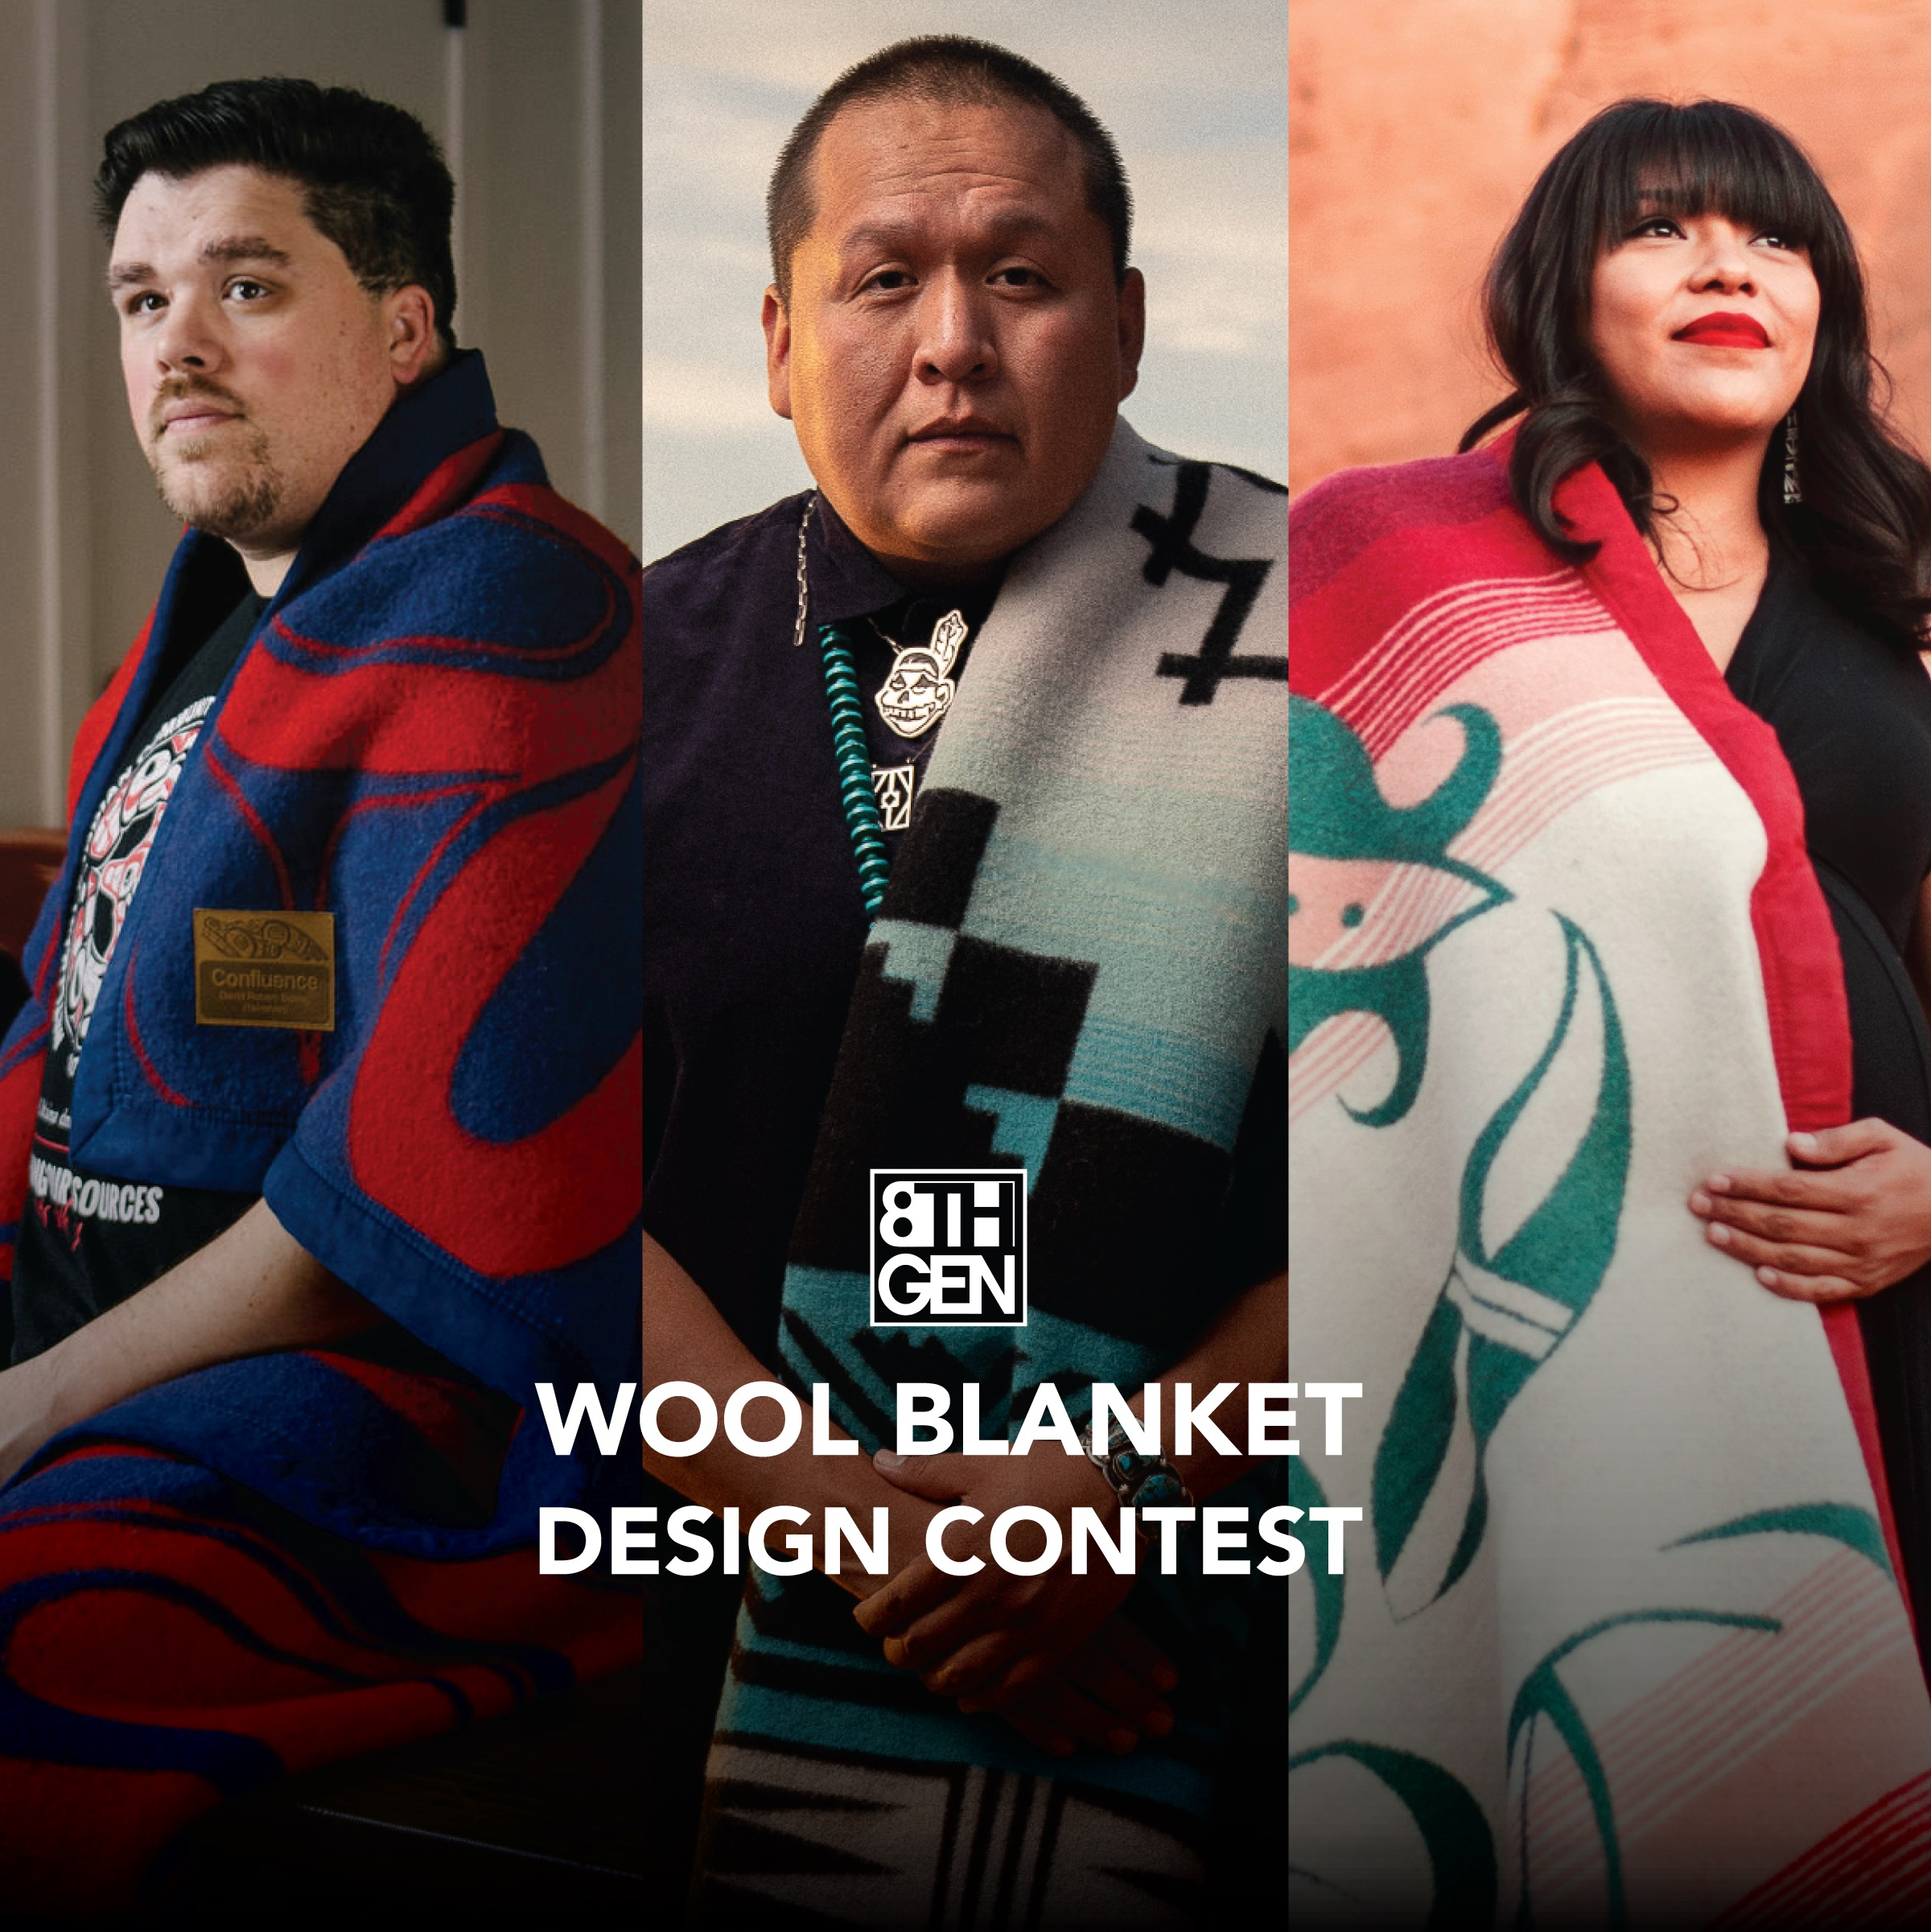 Eighth Generation announces another Native wool blanket design contest